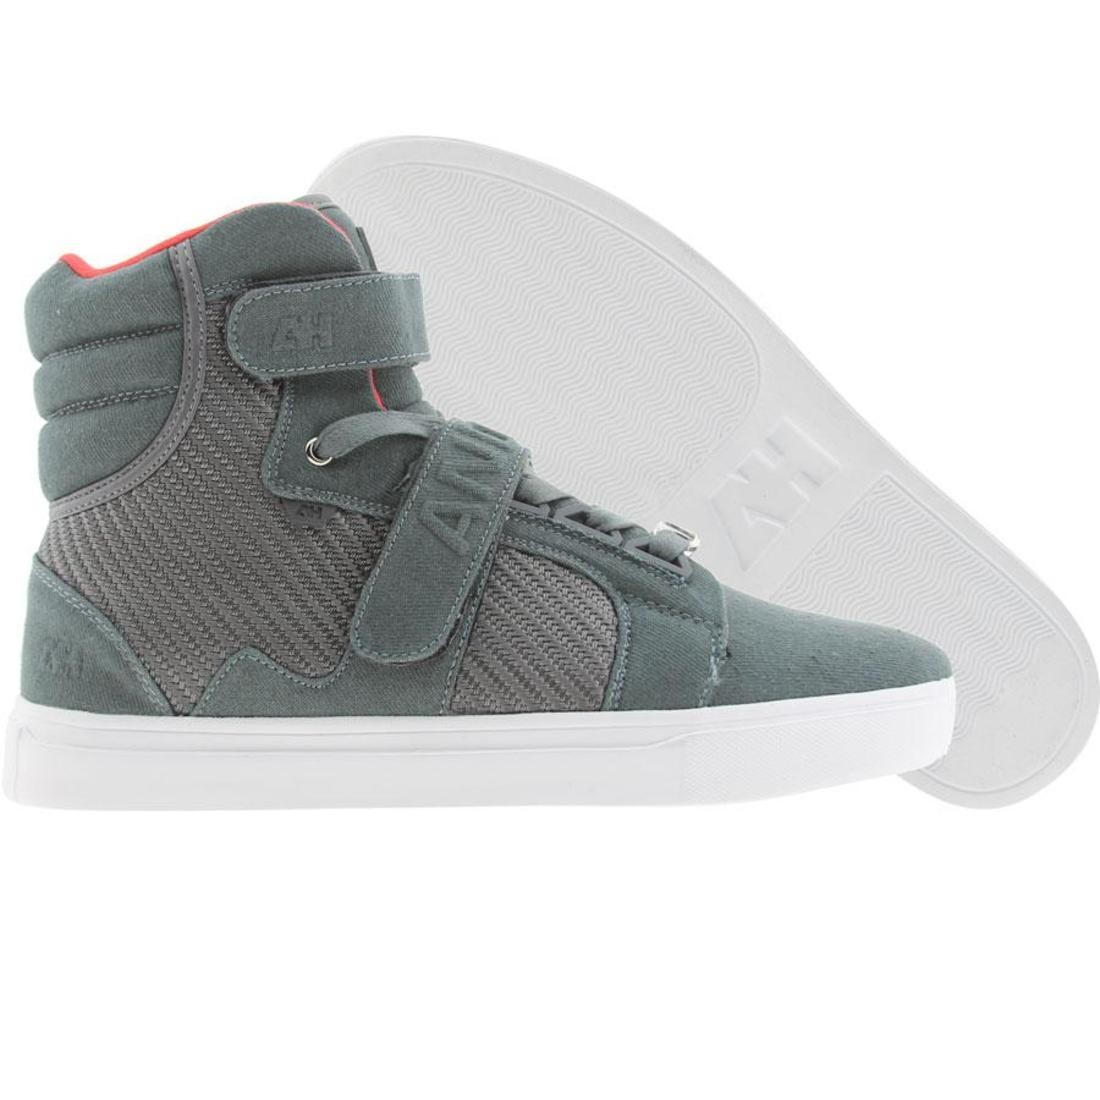 【海外限定】ハイ スニーカー メンズ靴 【 AH BY ANDROID HOMME PROPULSION HIGH GREY DENIM 】